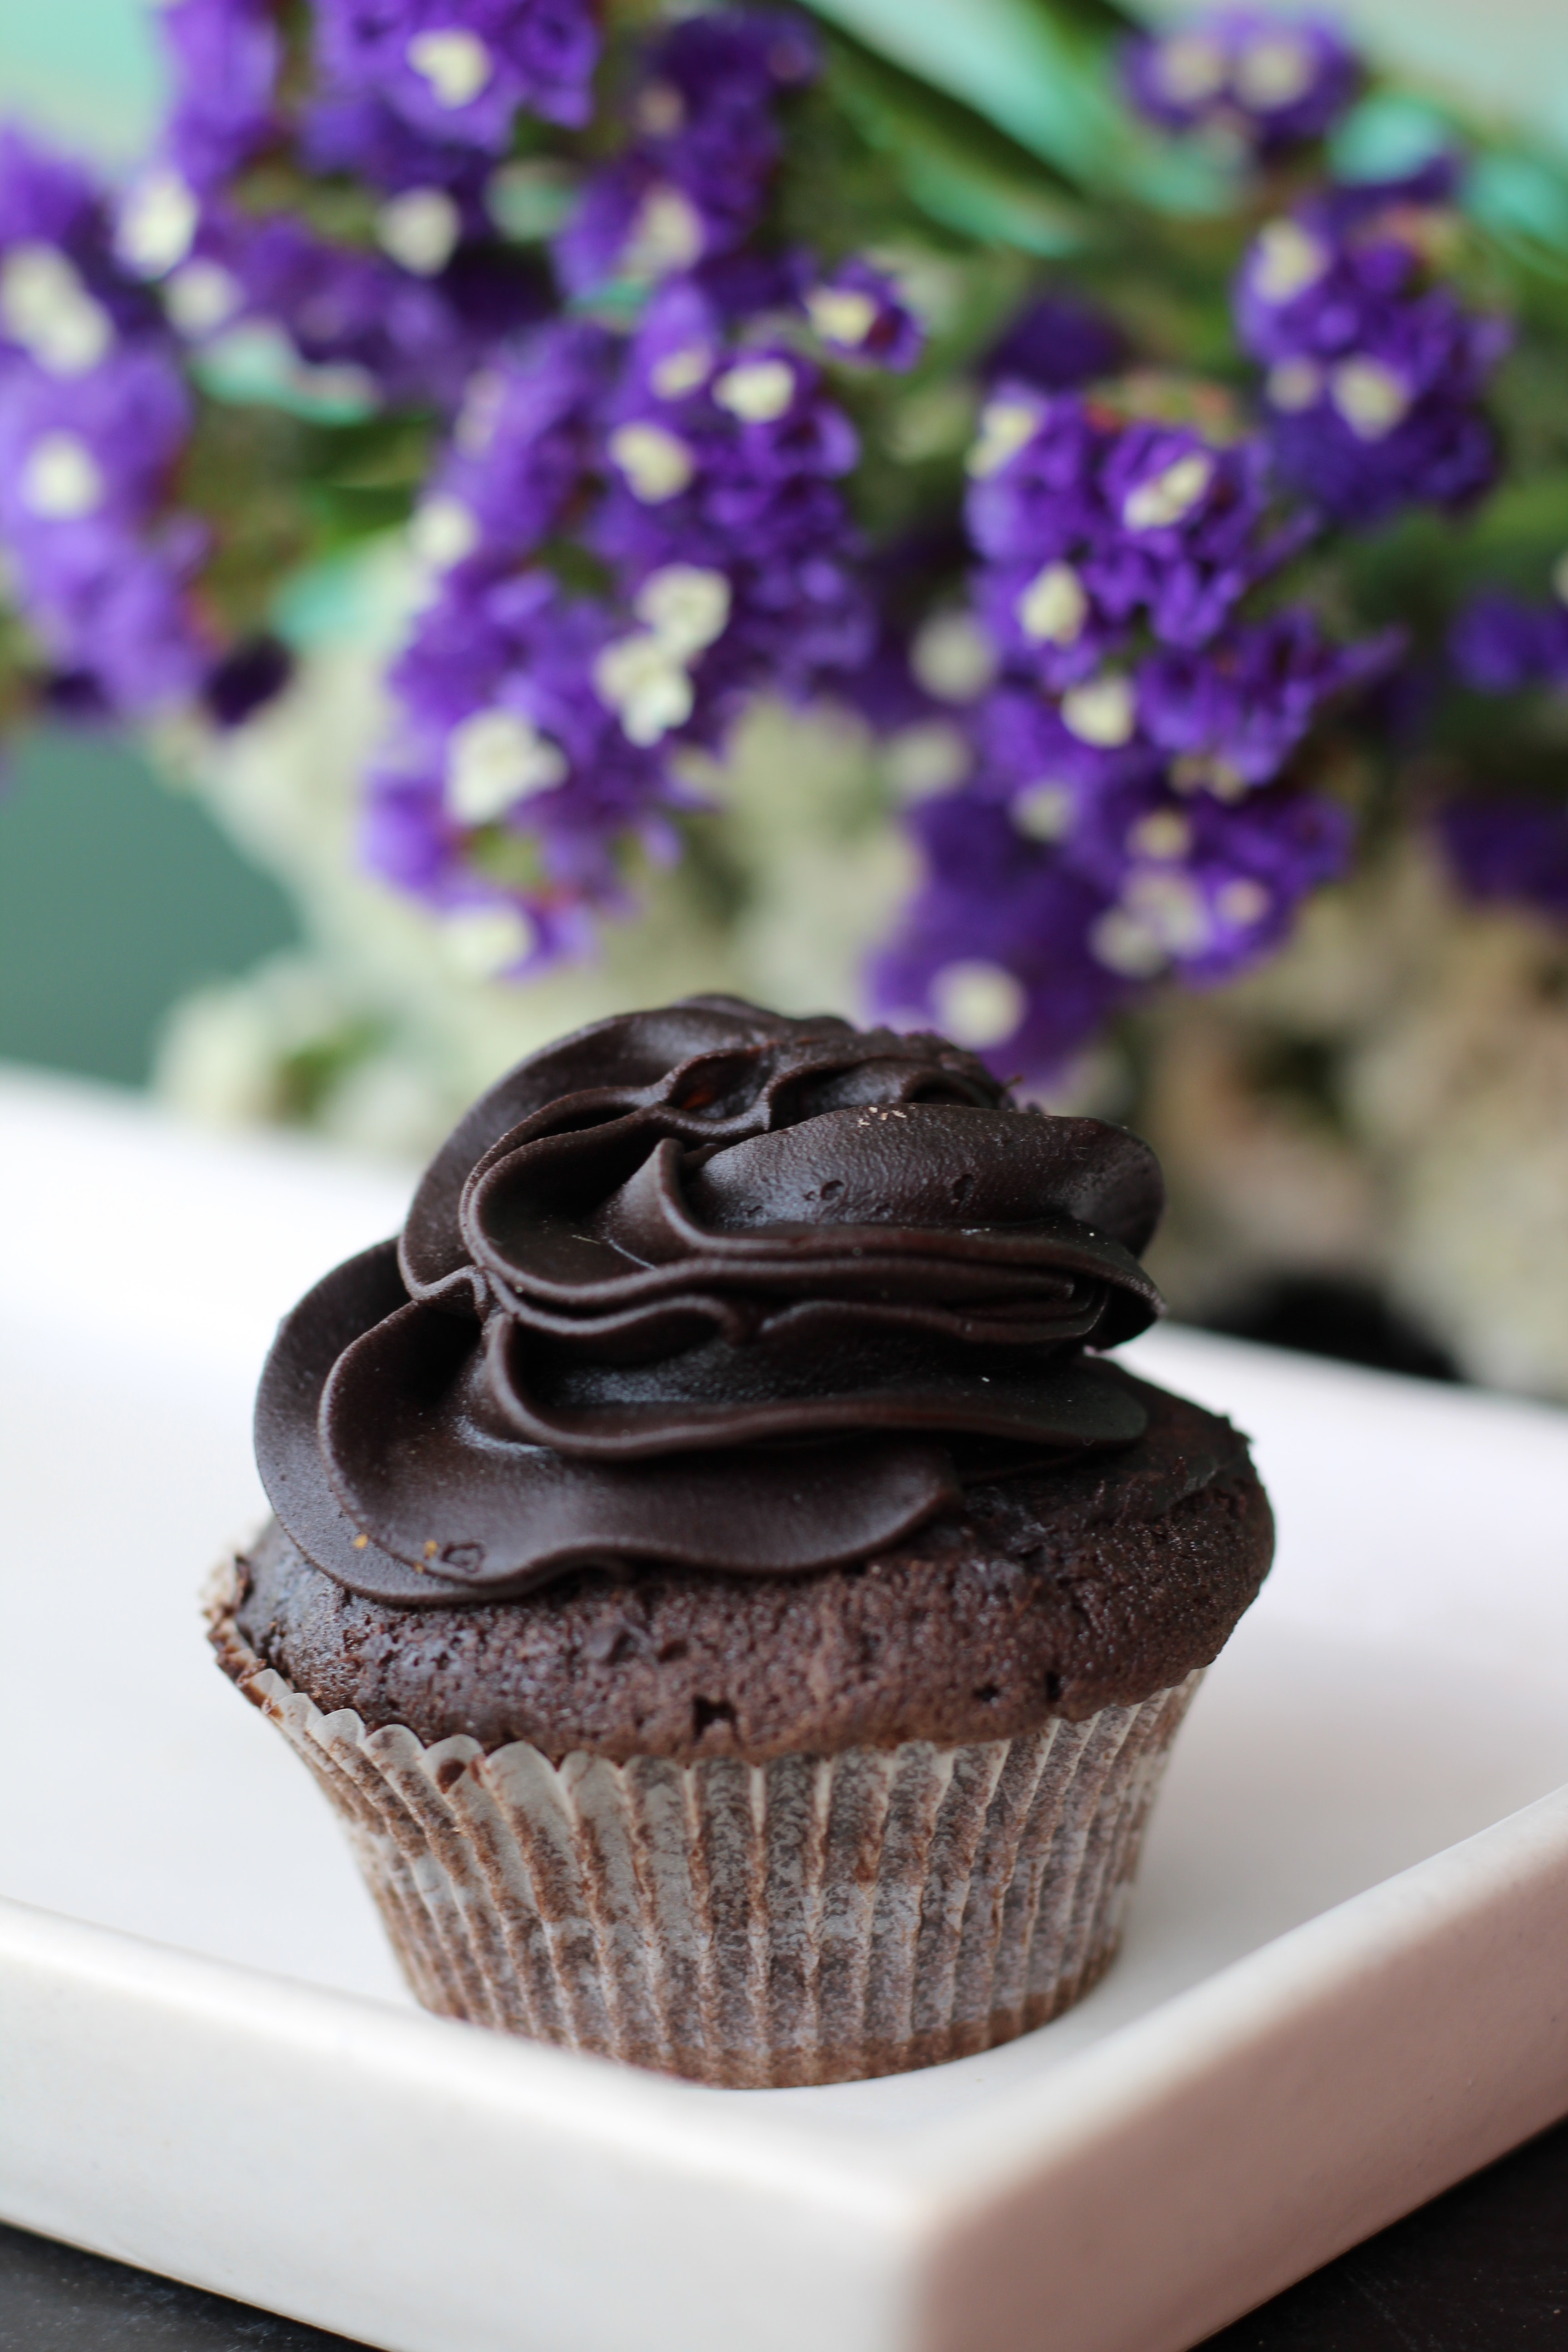 Chocolate Muffin With Chocolate Syrup 183 Free Stock Photo